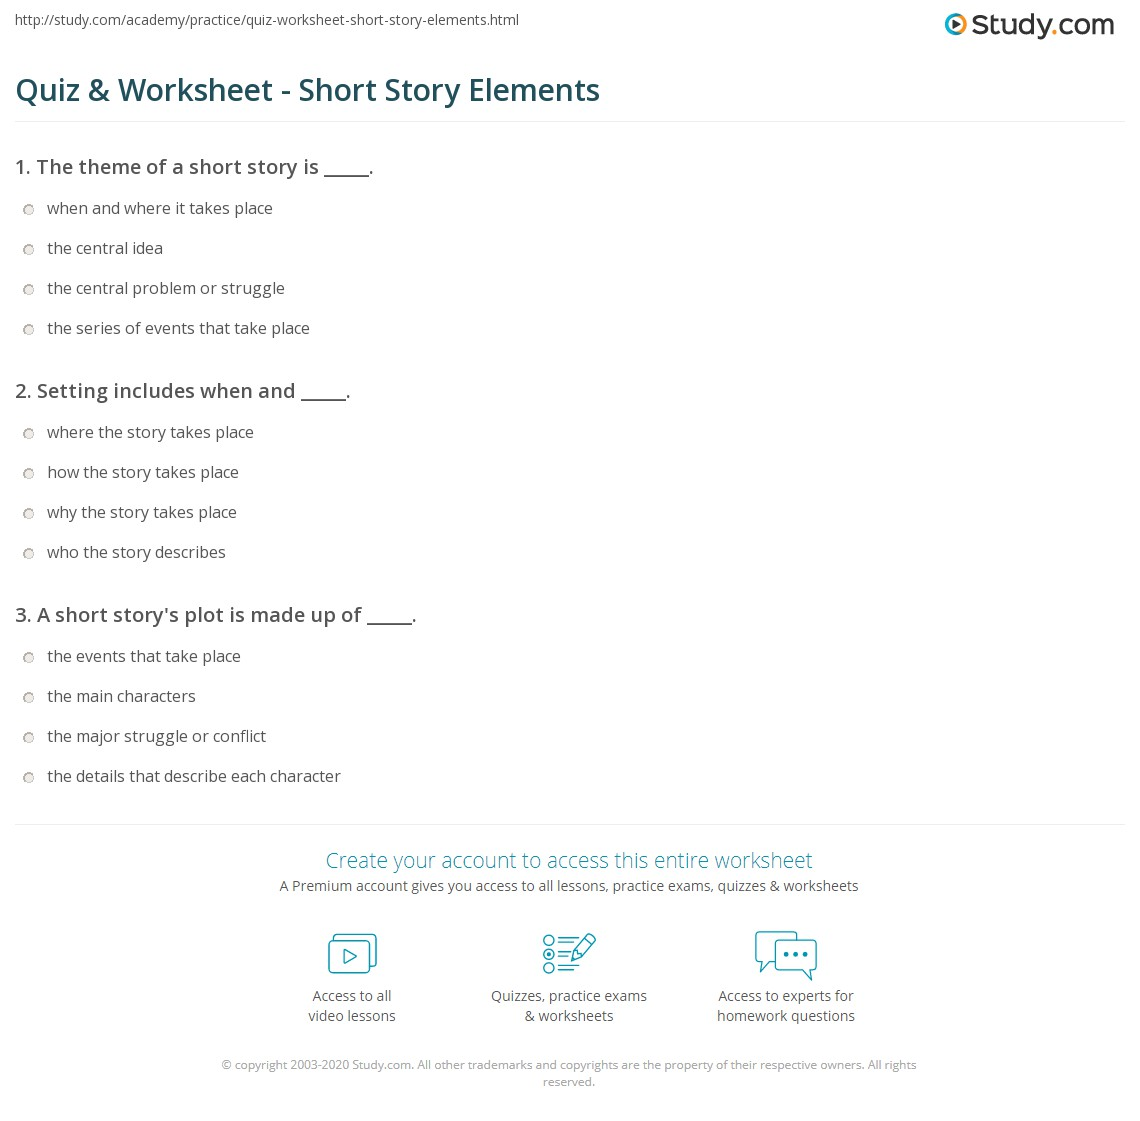 Worksheets Story Elements Worksheets quiz worksheet short story elements study com print of a worksheet